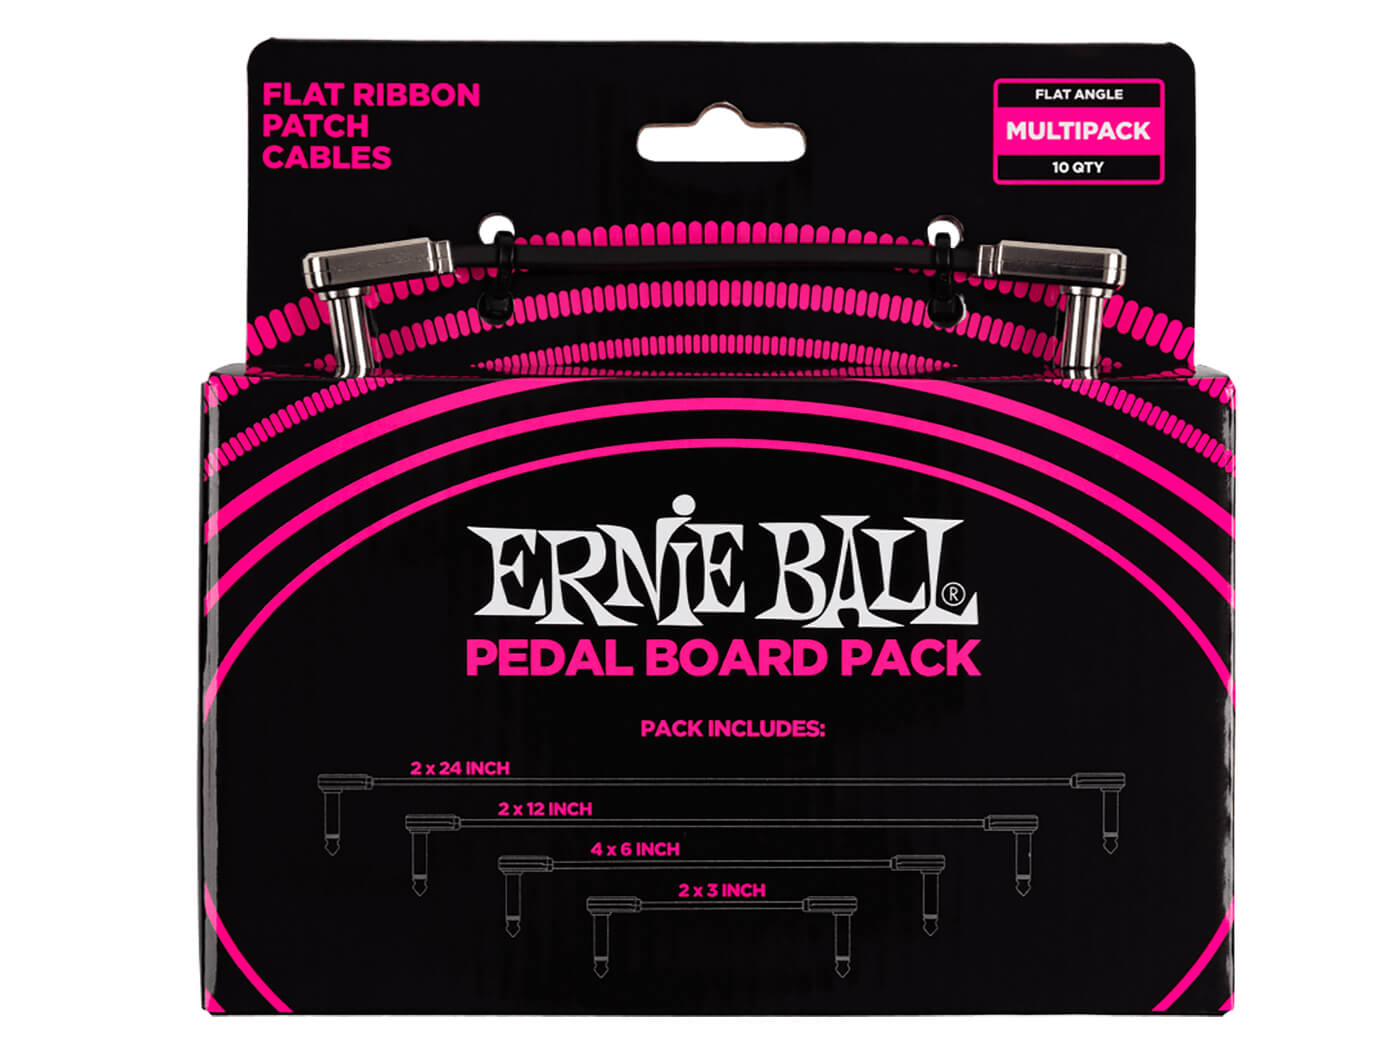 Ernie Ball Flat Ribbon Patch Cables Pedalboard Pack Multipack